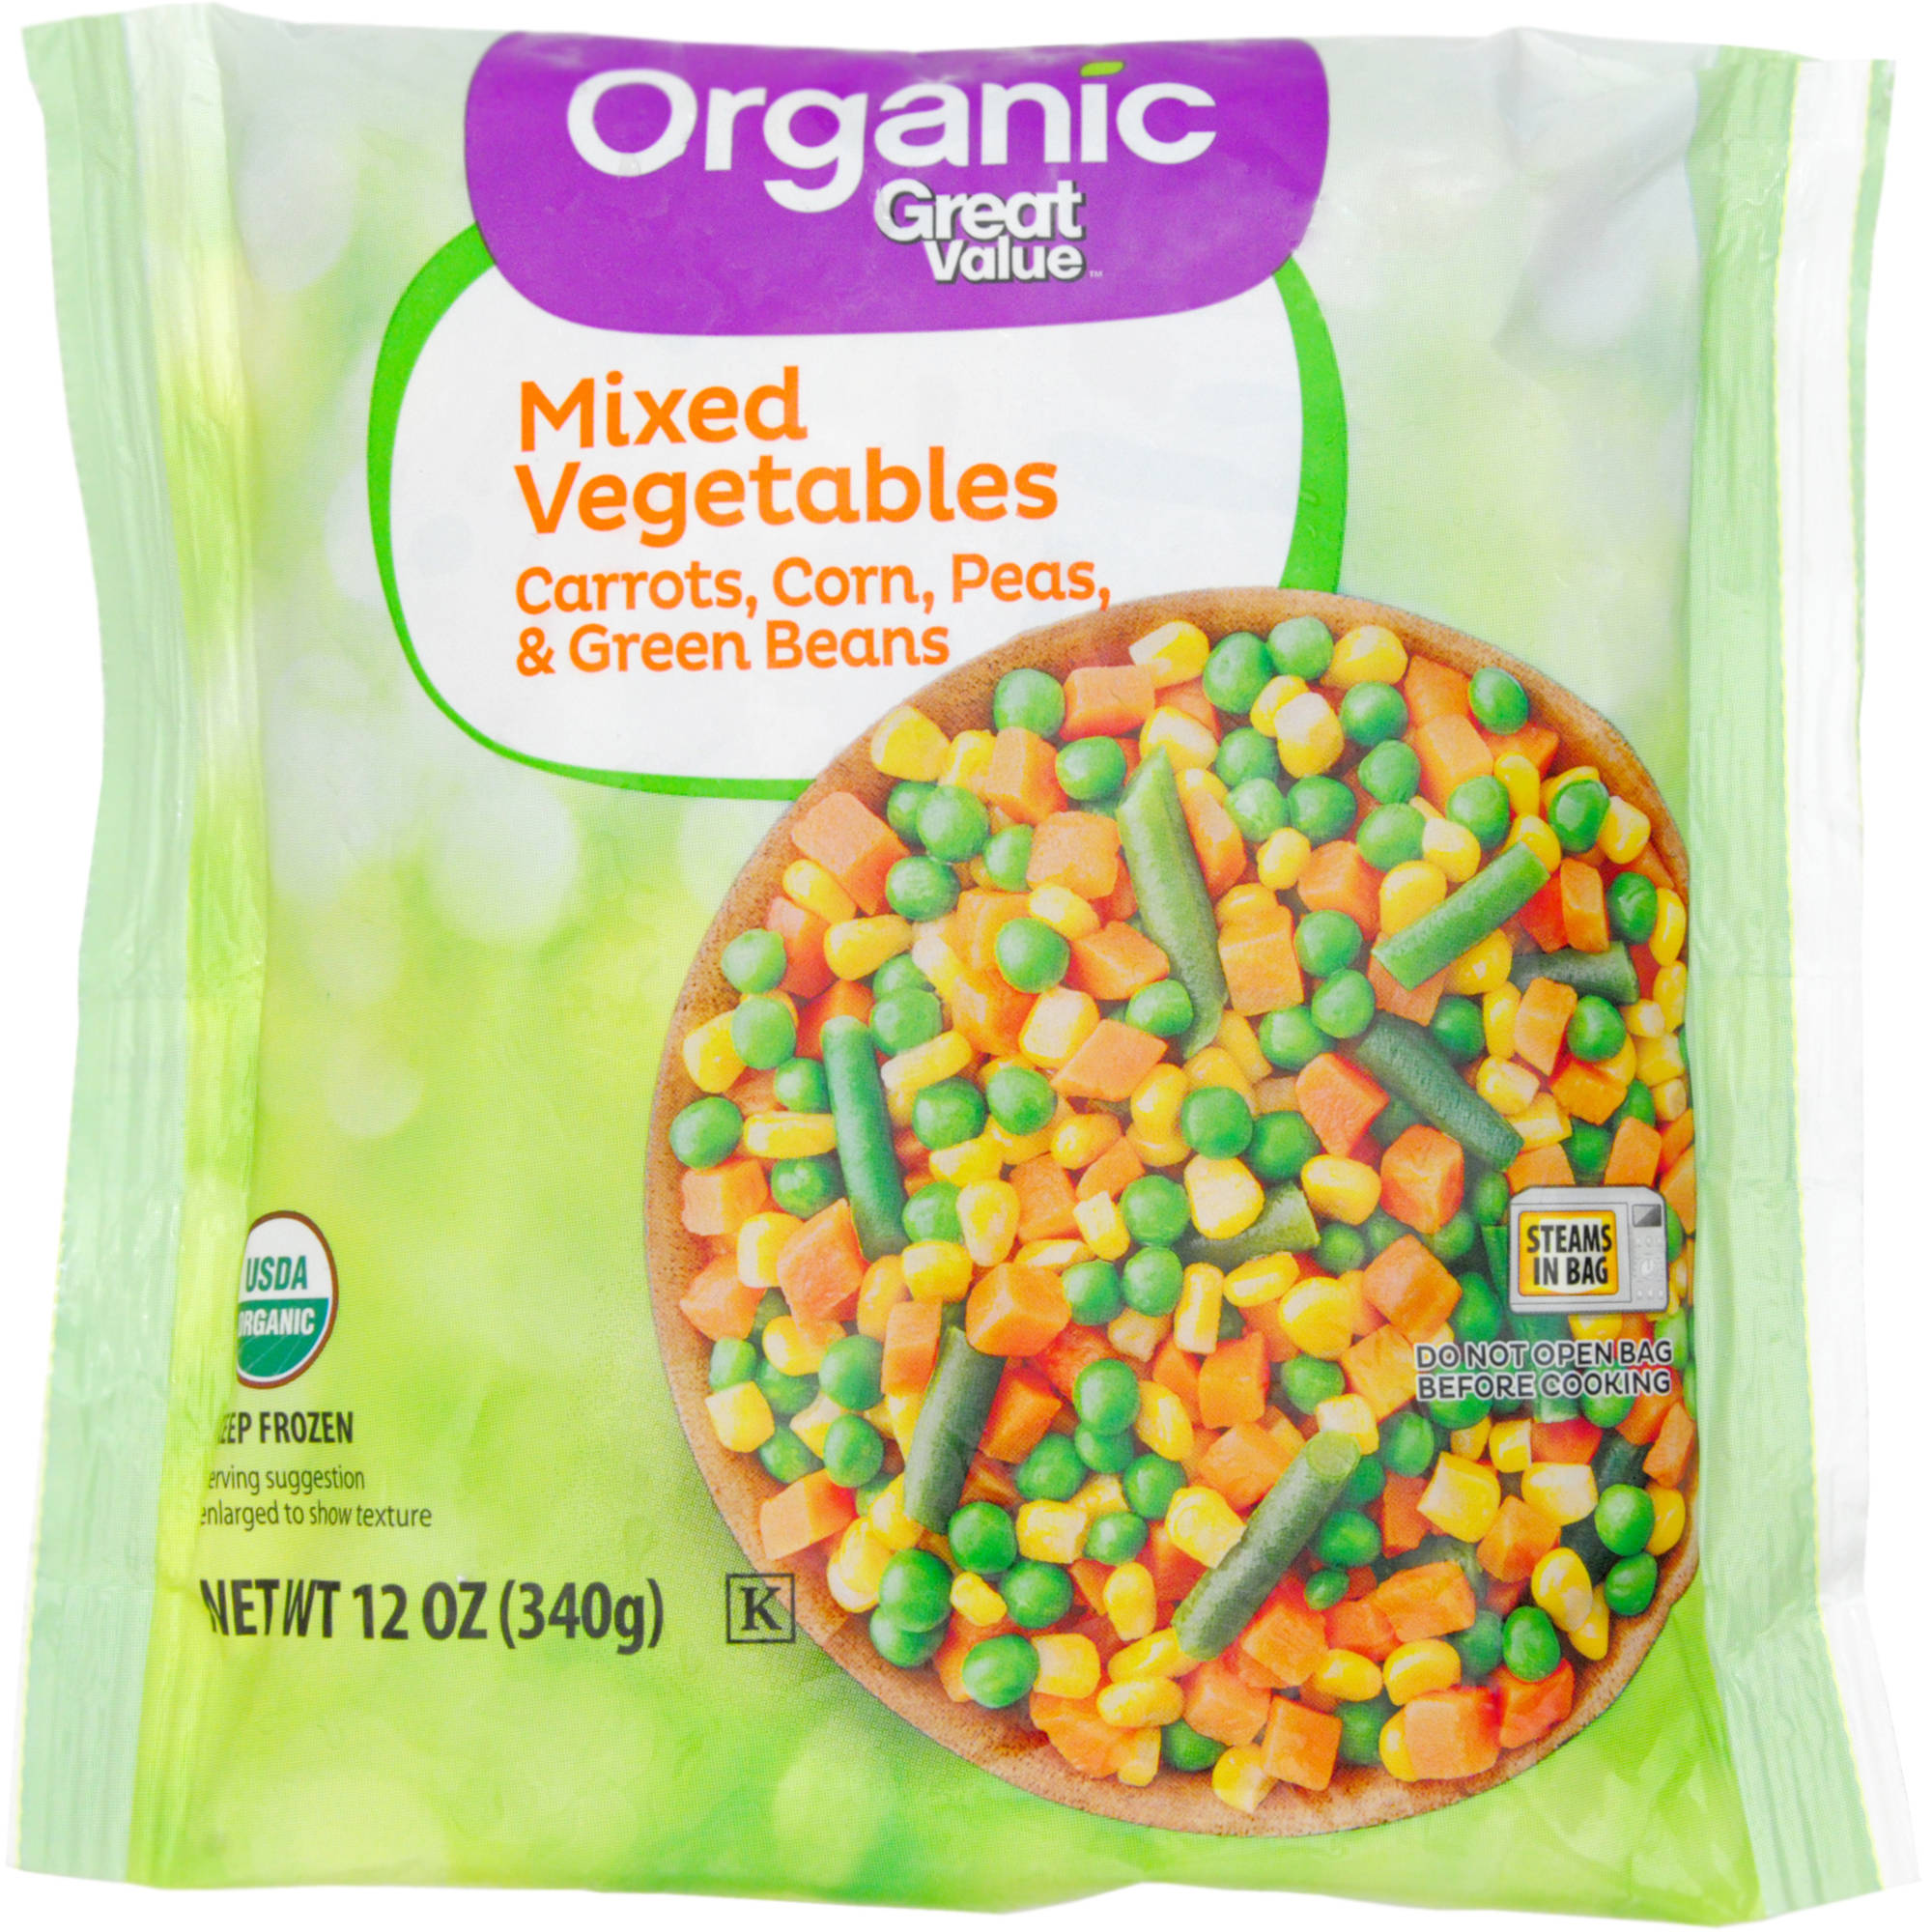 Great Value Organic Mixed Vegetables